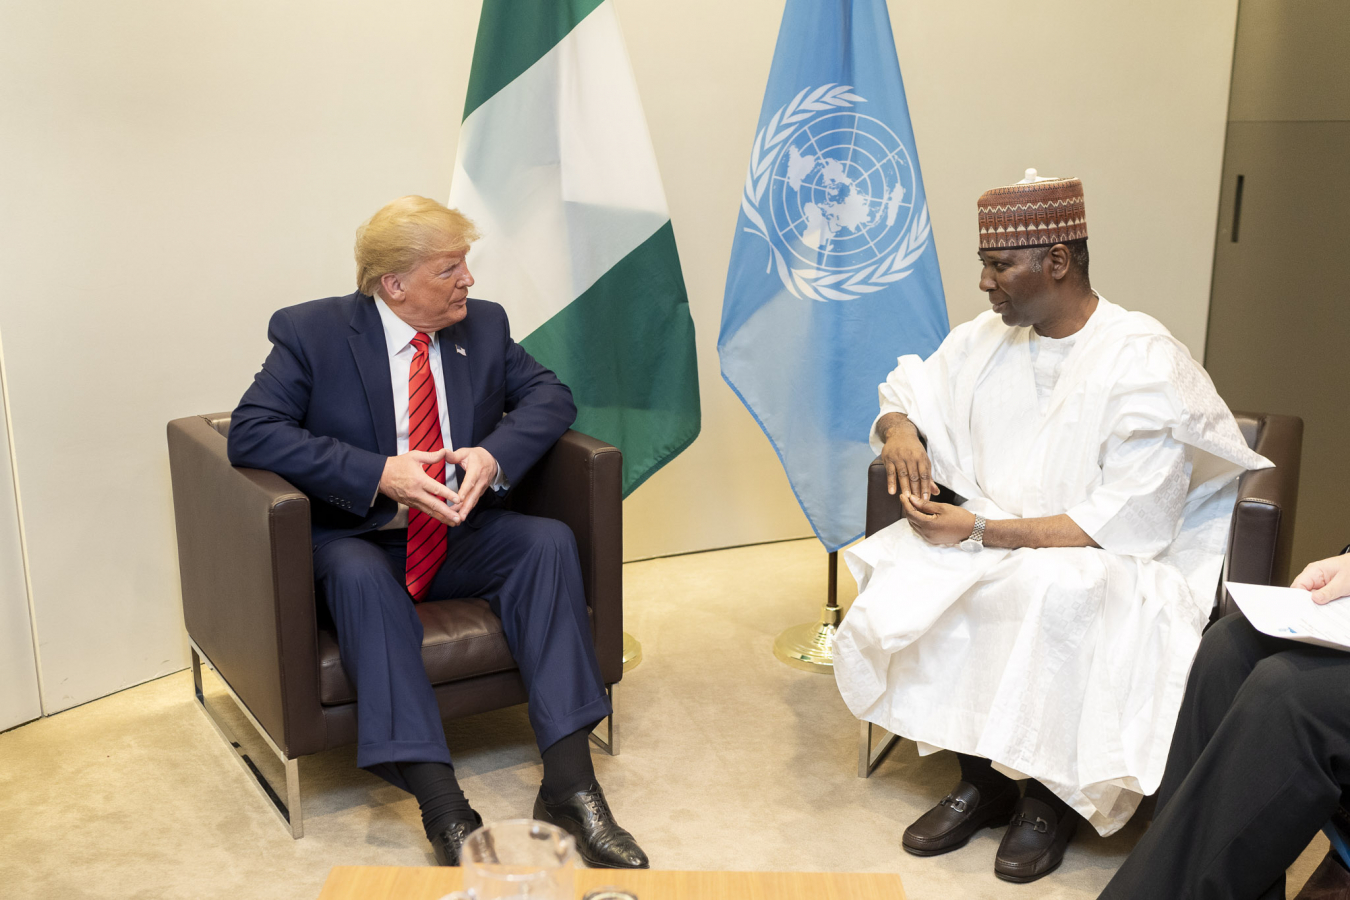 Donald J. Trump with President of the U.N. General Assembly Tijjani Muhammad-Bande of Nigeria 24 September 2019